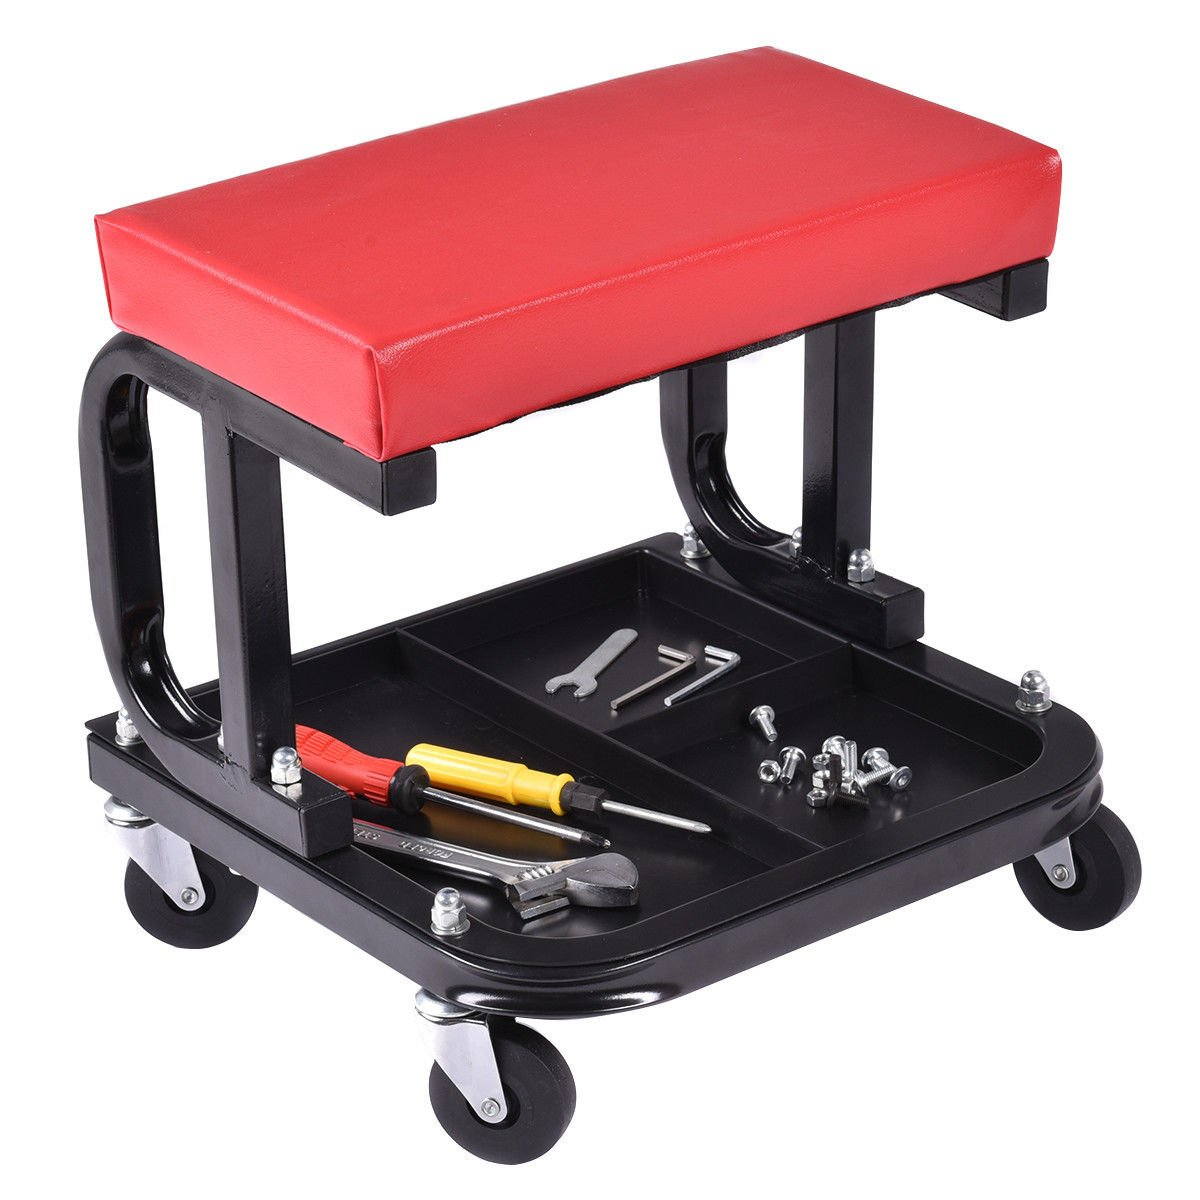 New Red and Black Chair Repair Tools Tray Shop Auto Car Garage Rolling Creeper Seat Mechanic Stool